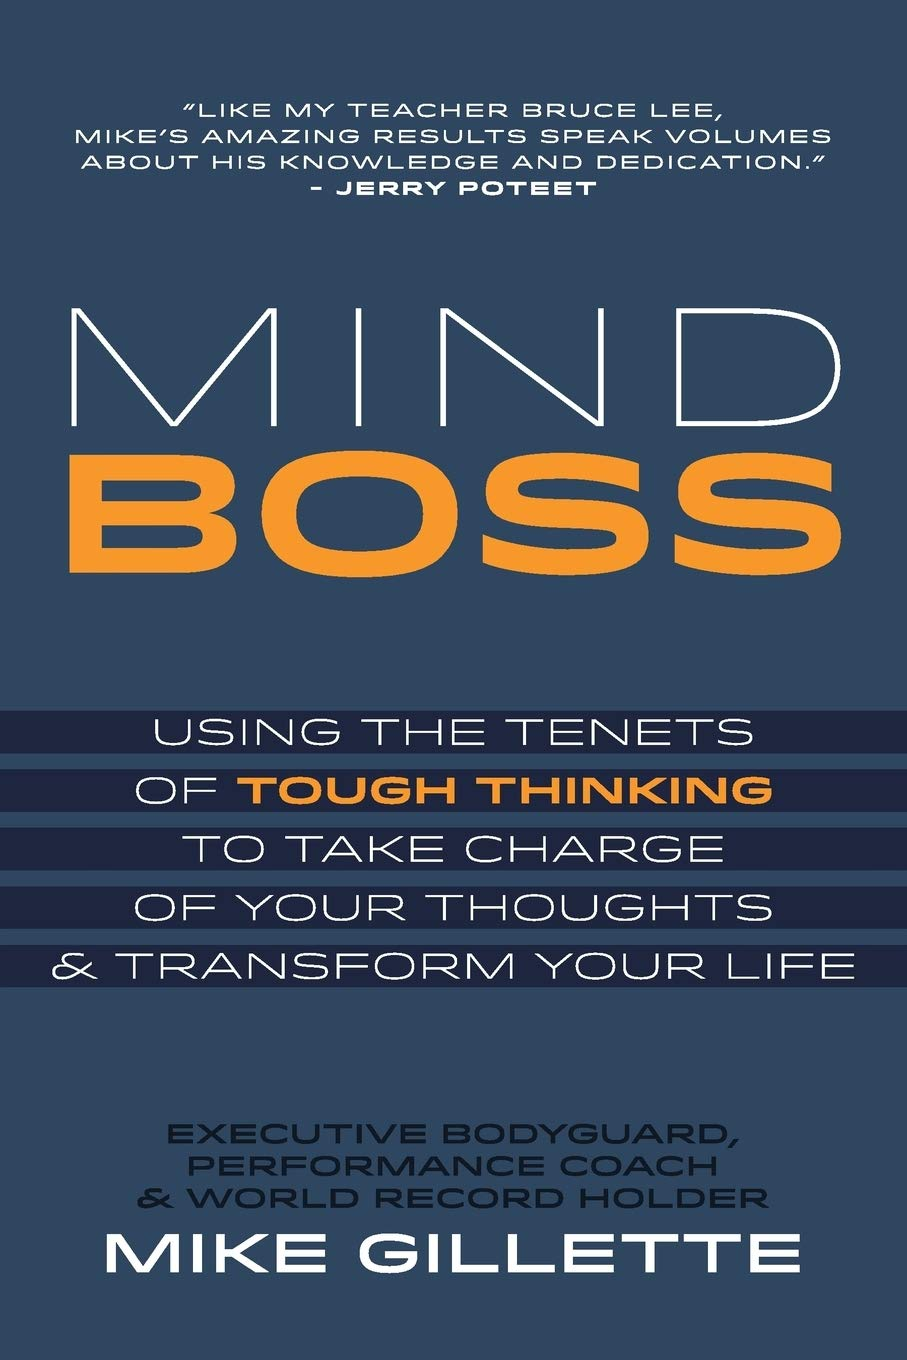 Image OfMind Boss: Using The Tenets Of Tough Thinking To Take Charge Of Your Thoughts And Transform Your Life